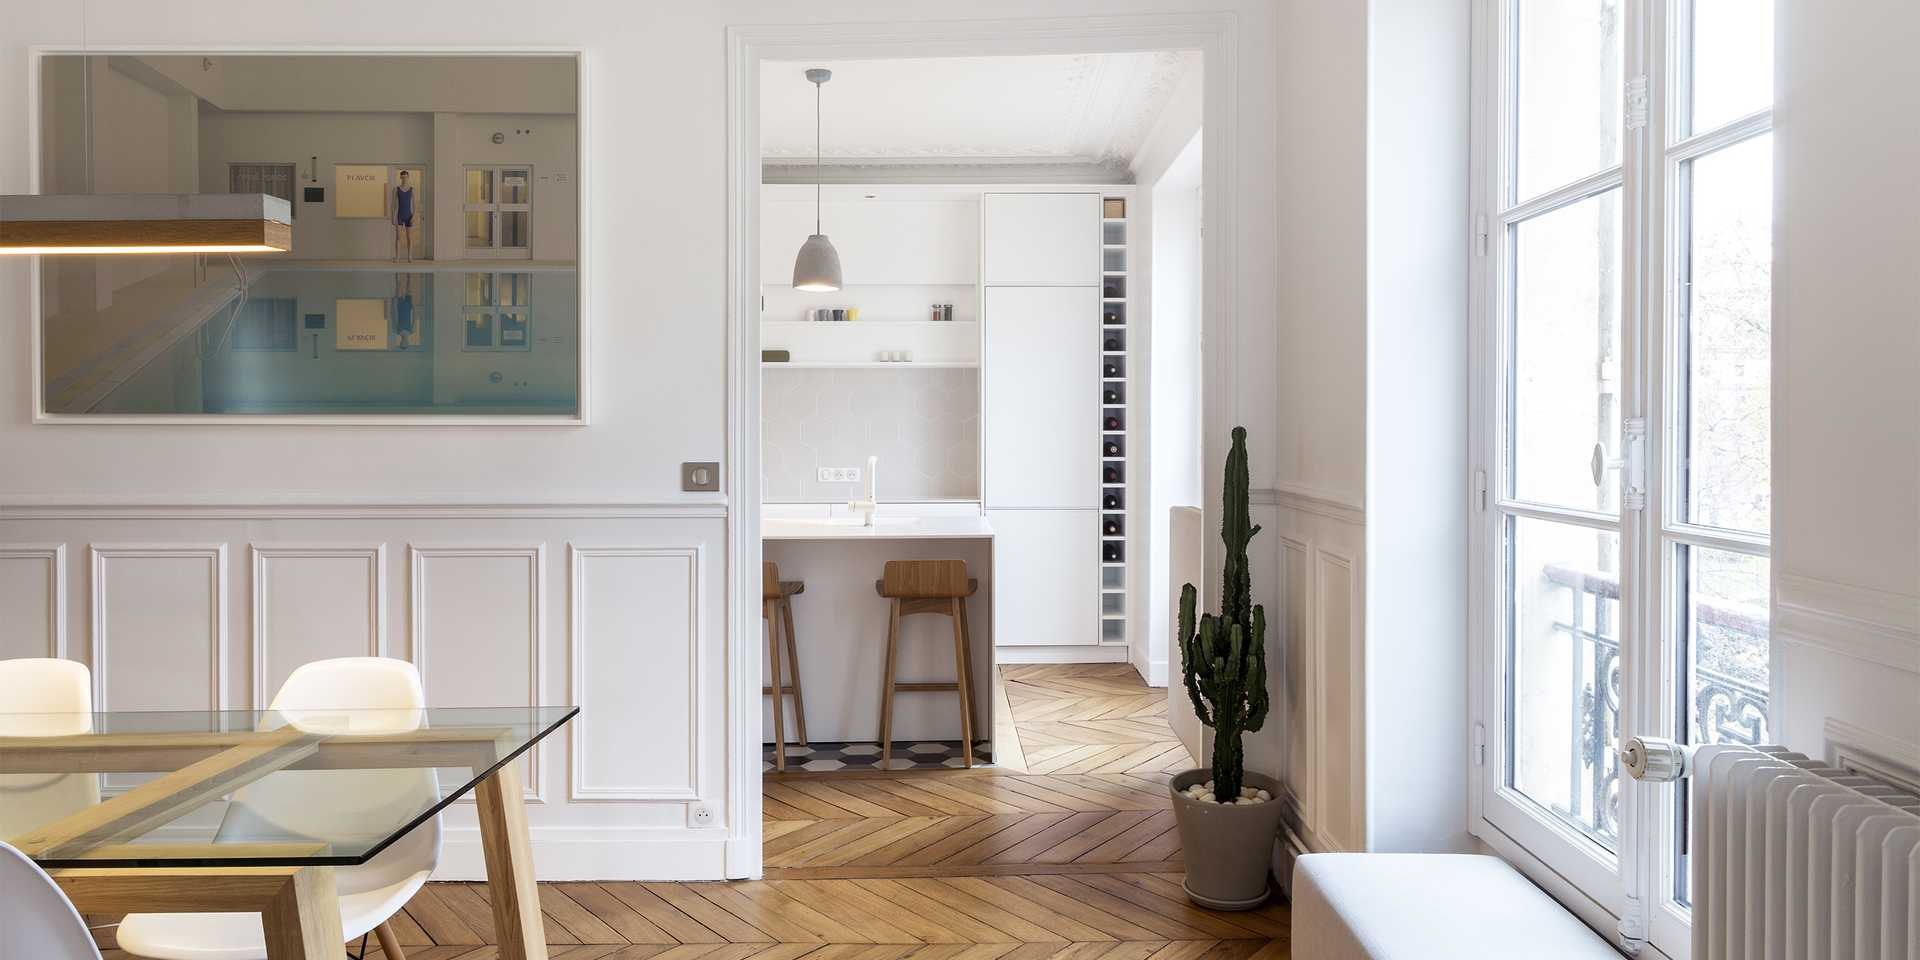 Haussmannian apartment redesigned by an architect in Aix-en-Provence